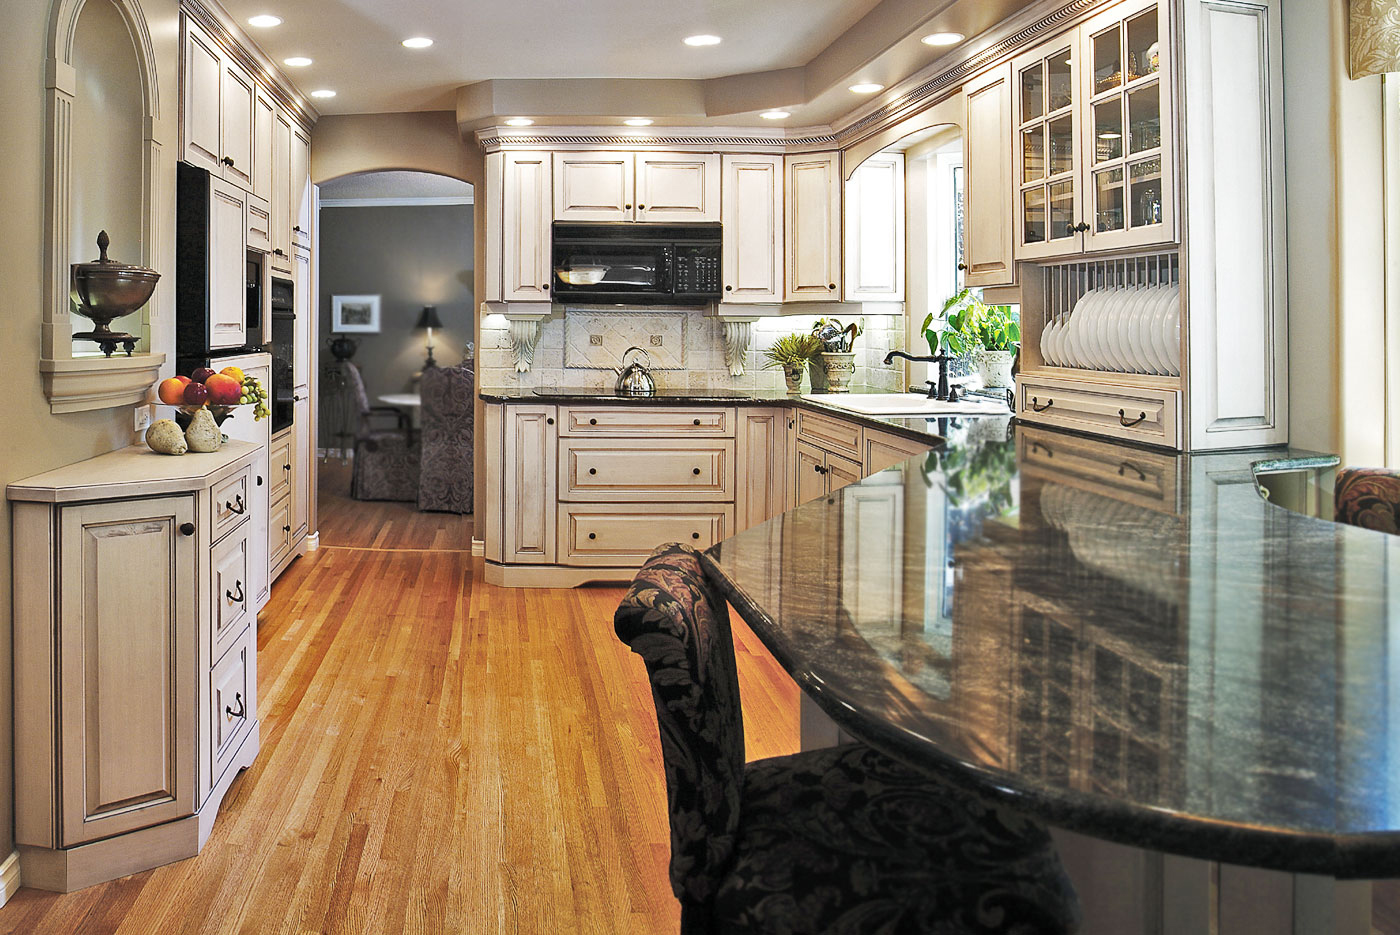 Old World kitchen in a light chalked handcrafted finish on maple, large peninsula, granite countertops, this kitchen was a winner of a CHBA National SAM award, available at Superior Cabinets Saskatoon, Regina, Calgary, Edmonton.